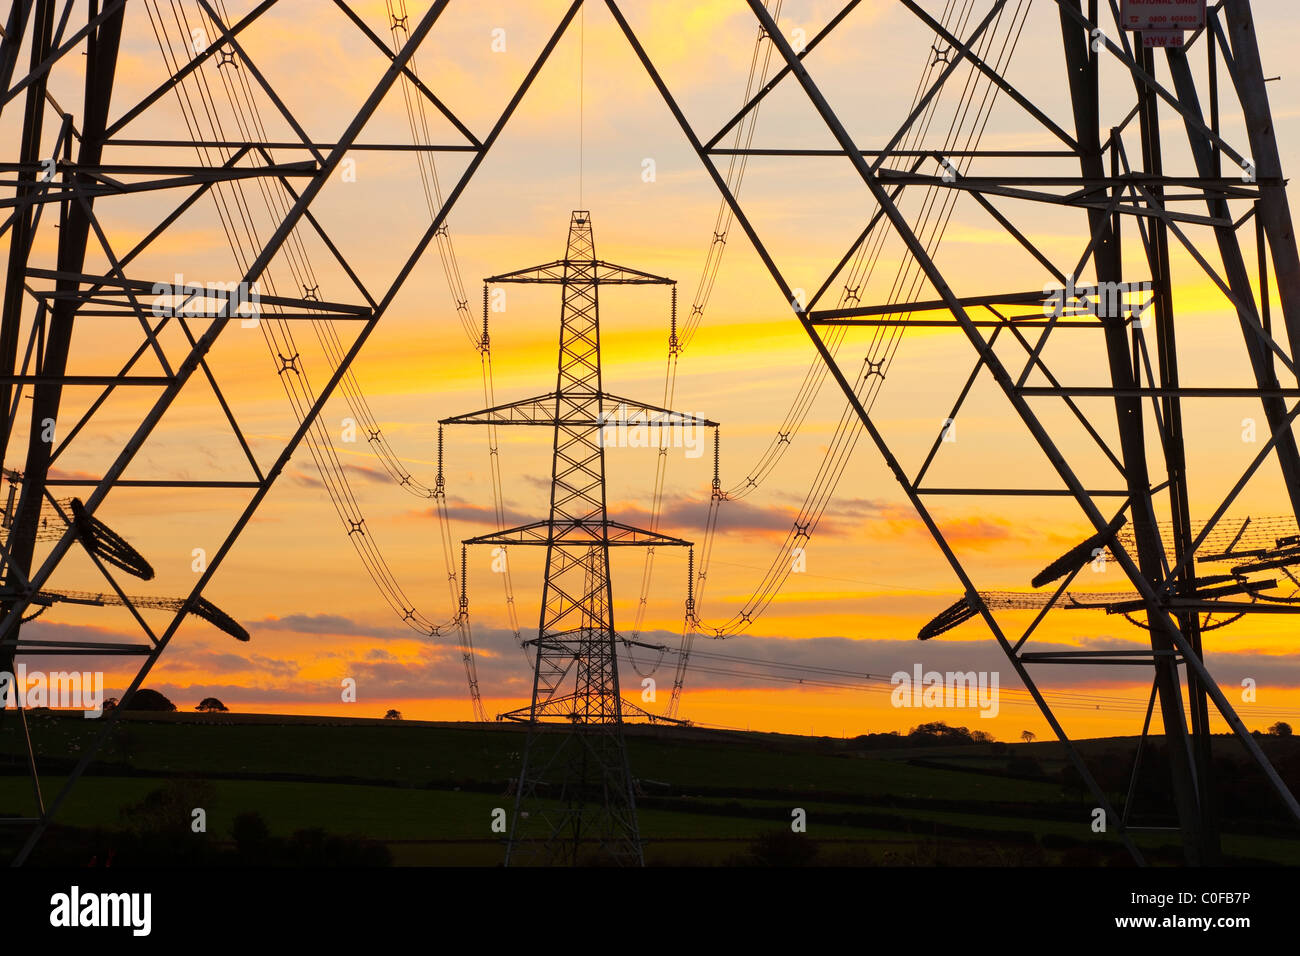 An electricity pylon of the National Grid in Wales at sunset - Stock Image